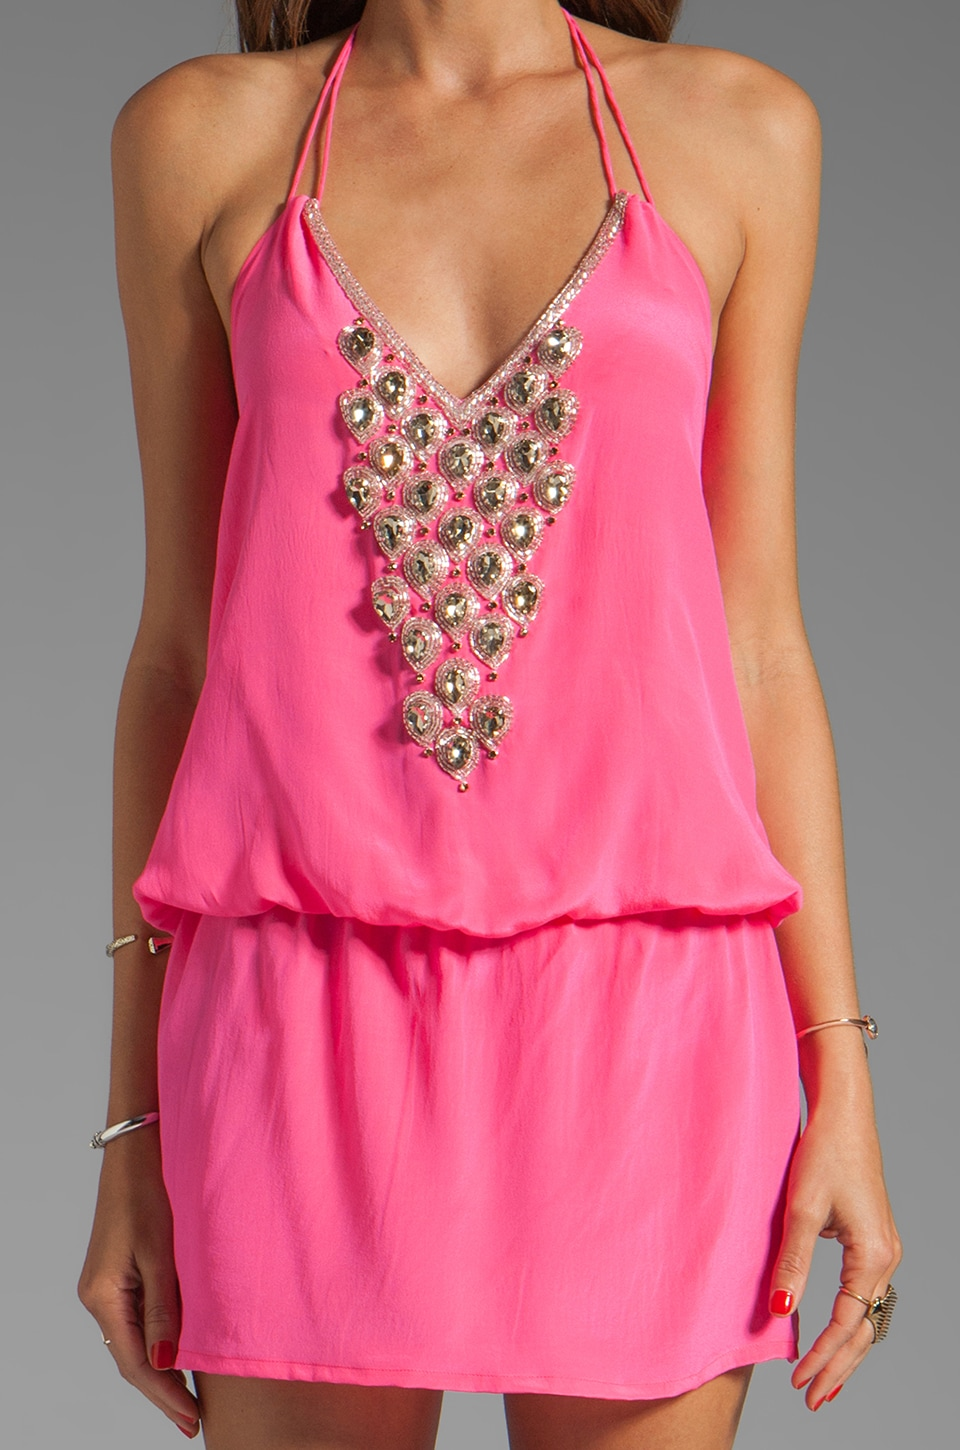 Karina Grimaldi Freeport Beaded Mini in Pink